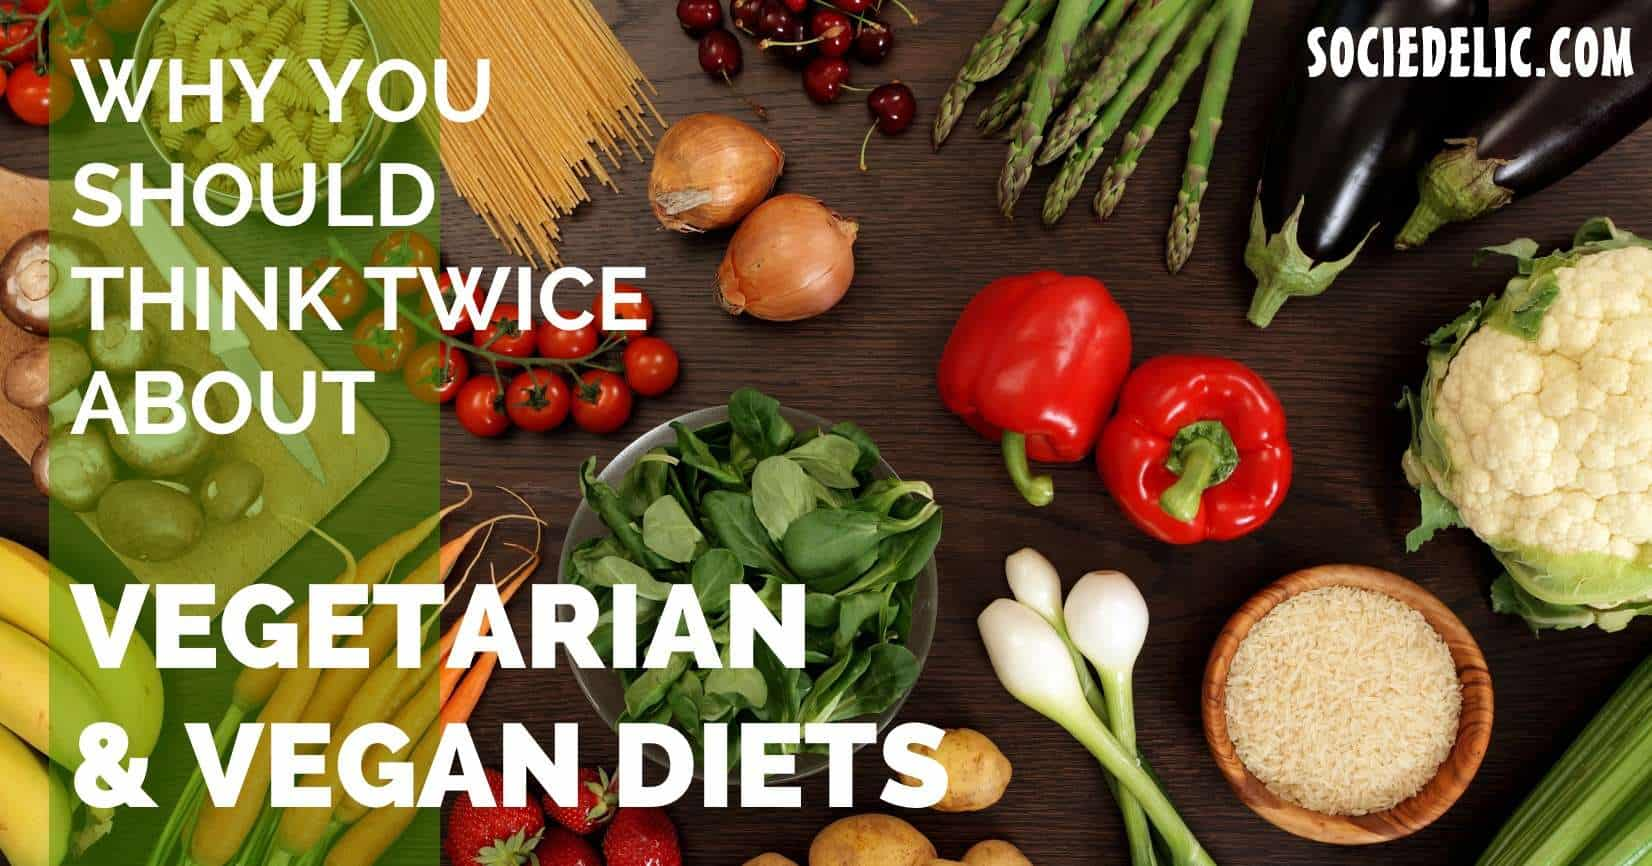 vegetarian diet is it good or bad philosophy essay Similar to a vegetarian diet, a pescetarian diet includes vegetables, fruits, grains, dairy, beans, and eggs unlike a vegetarian diet, a pescetarian diet also includes fish and shell fish the term first originated in 1993 and is a blend of the italian word pesce (fish) and the english word vegetarian.